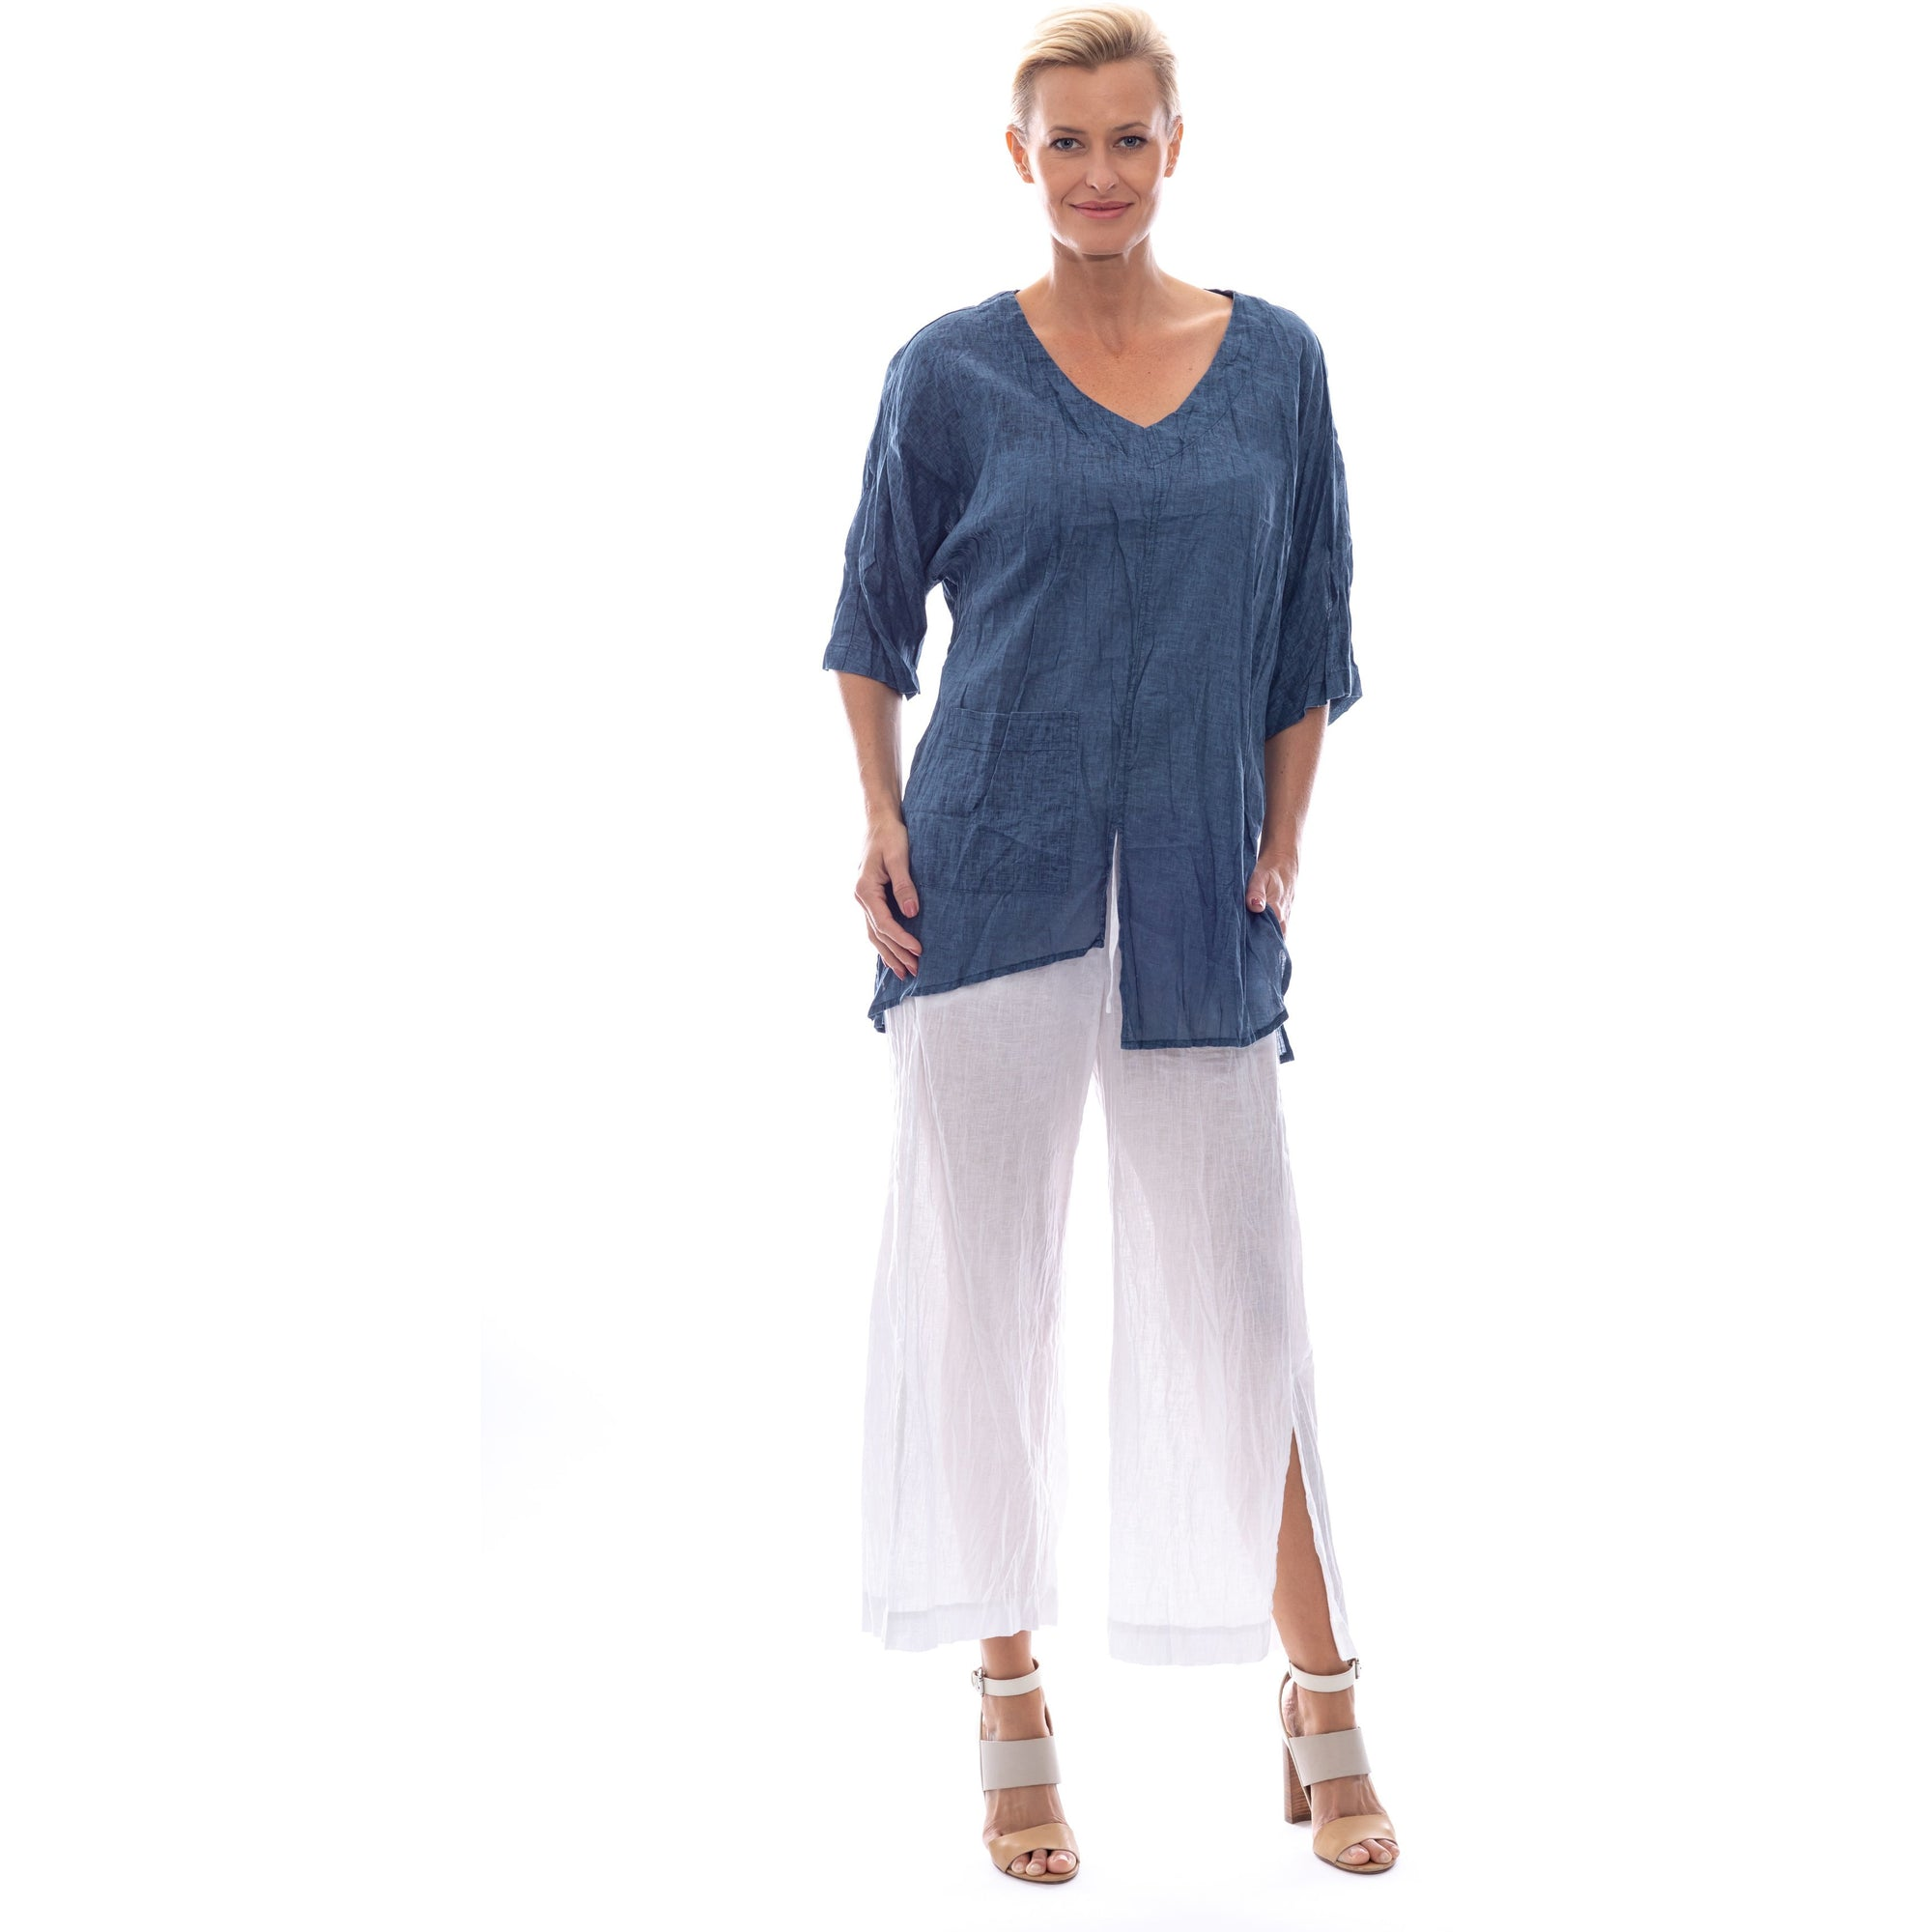 Sequel by Cafe Latte Split Top In Indigo Blue